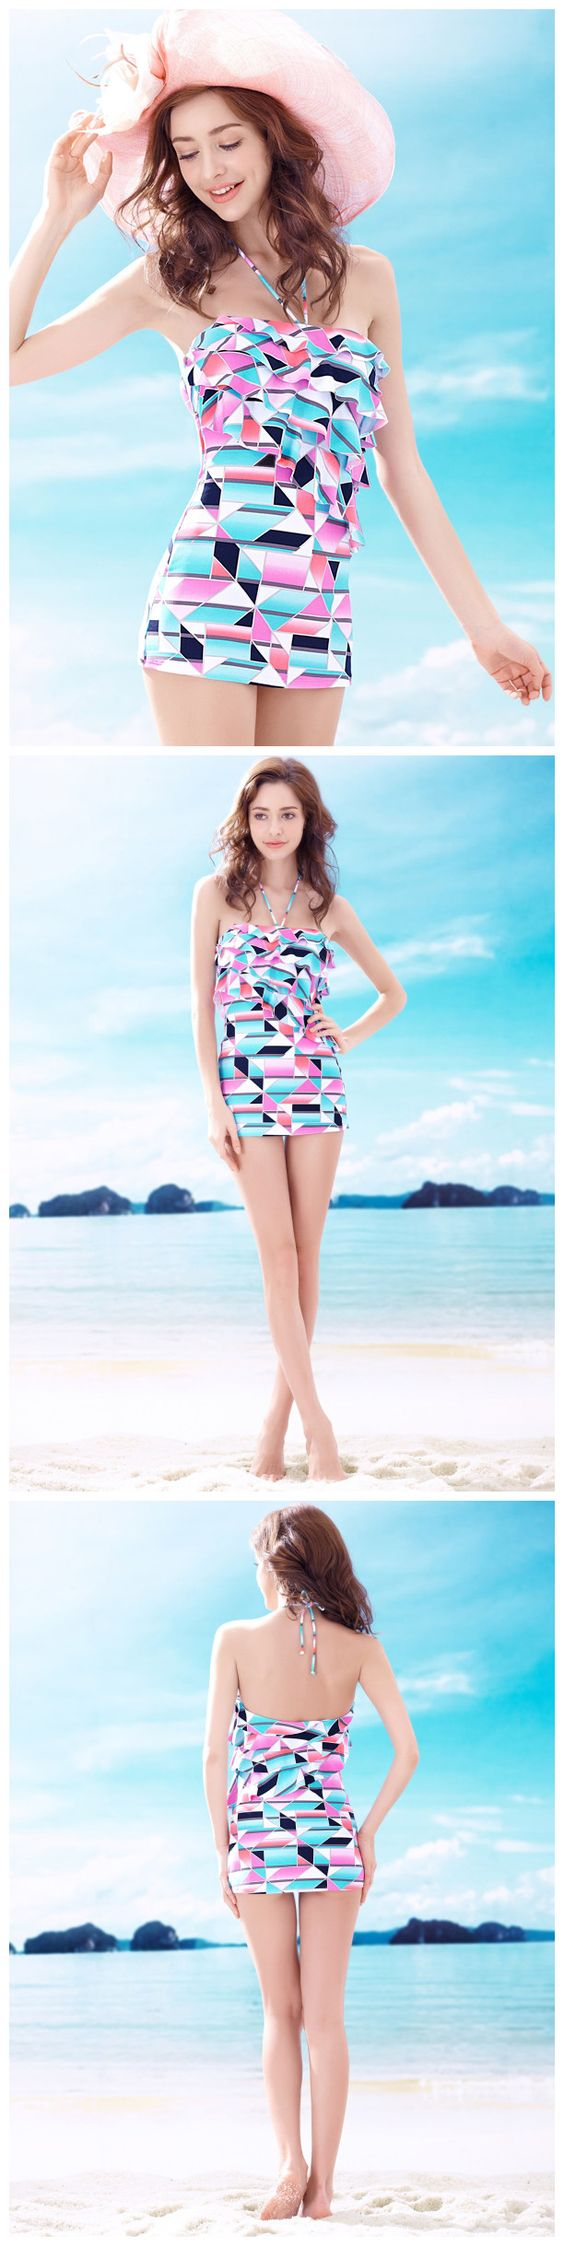 Summer Eye-catching Multi-layer Lotus Geometry Pattern Conjoined Swimsuit http://www.amazon.co.uk/s/ref=sr_ex_p_4_0?me=AWH6KY5XWWO07&rh=i%3Amerchant-items&ie=UTF8&qid=1434678957&lo=merchant-items